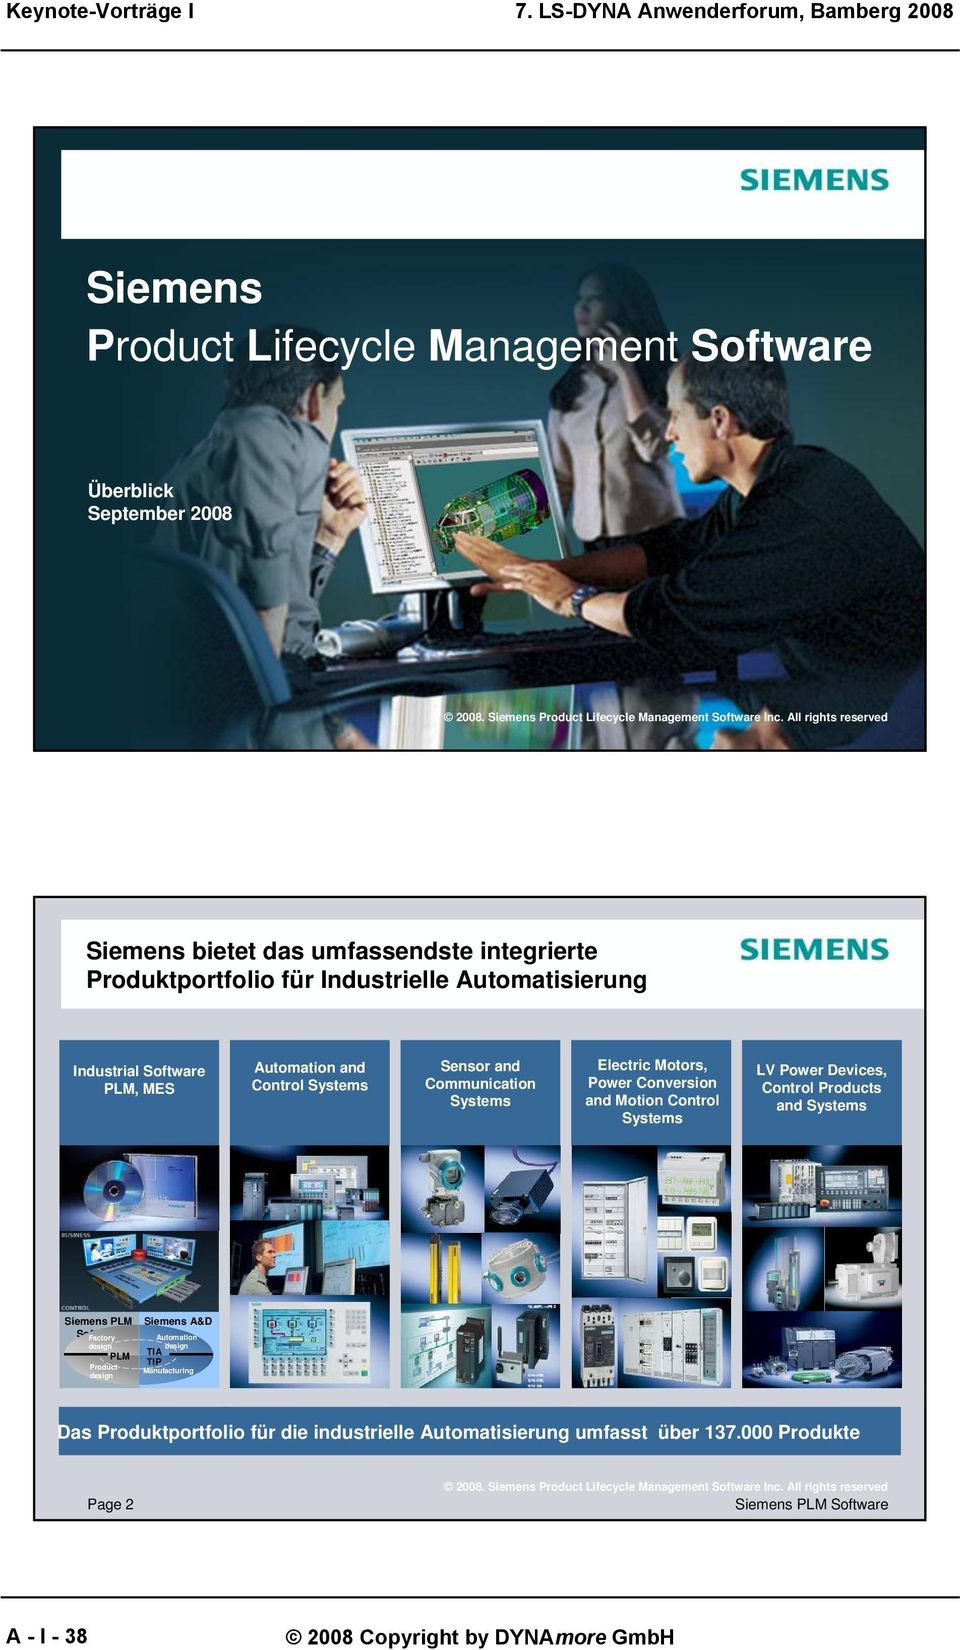 Produktportfolio für Industrielle Automatisierung Industrial Software PLM, MES Automation and Control Systems Sensor and Communication Systems Electric